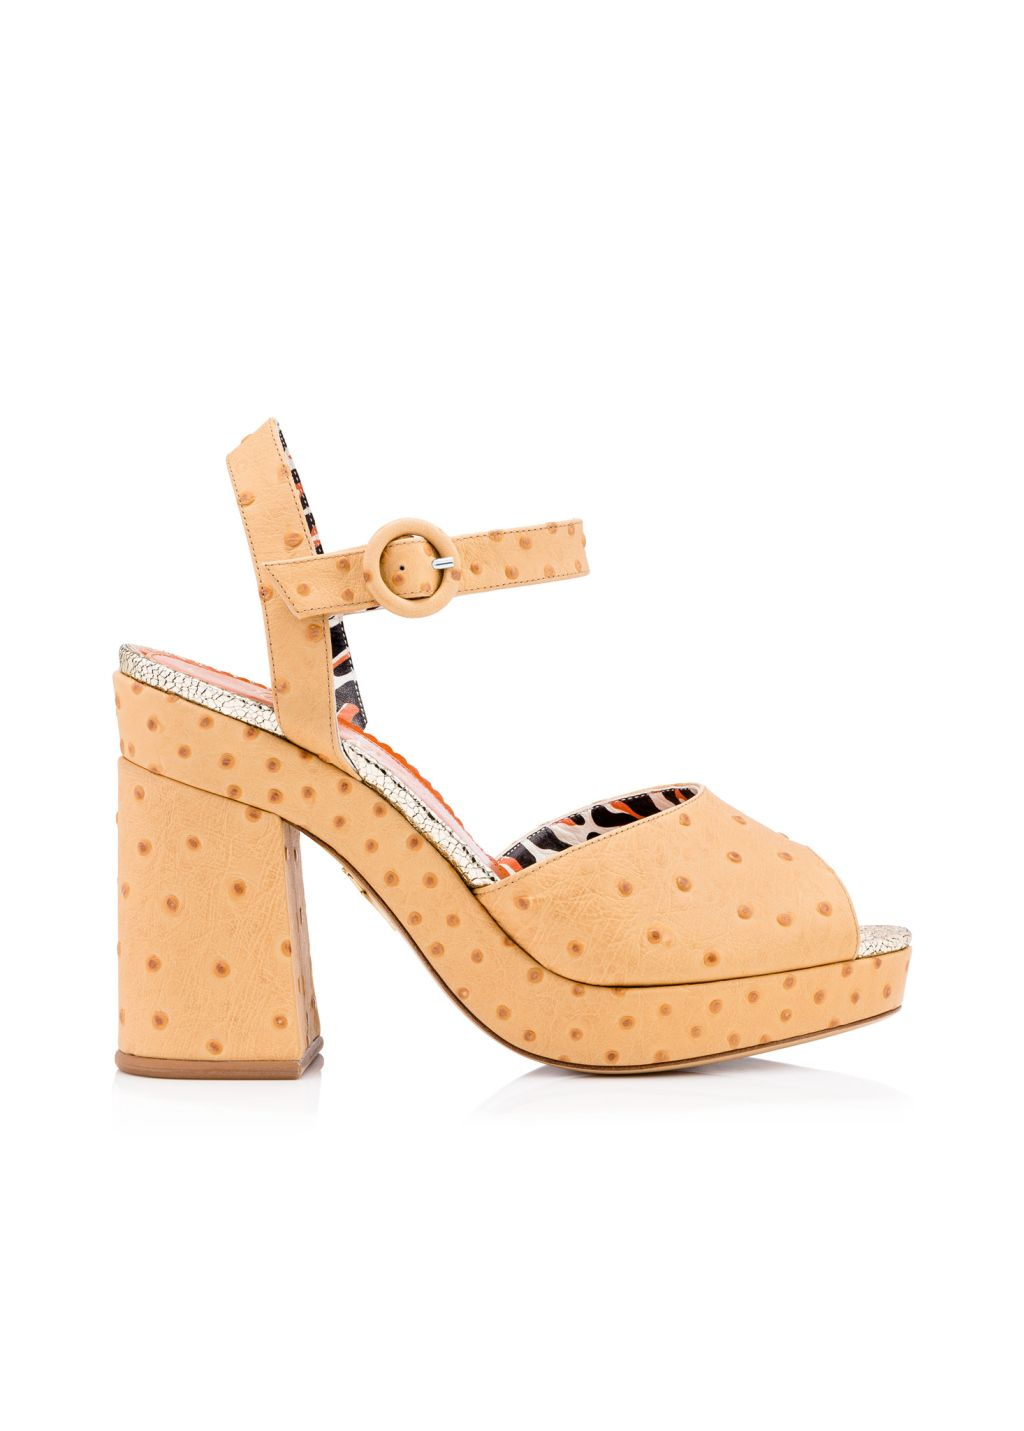 5be751a4e Charlotte Olympia Ostrich Sandal. Nude Heels